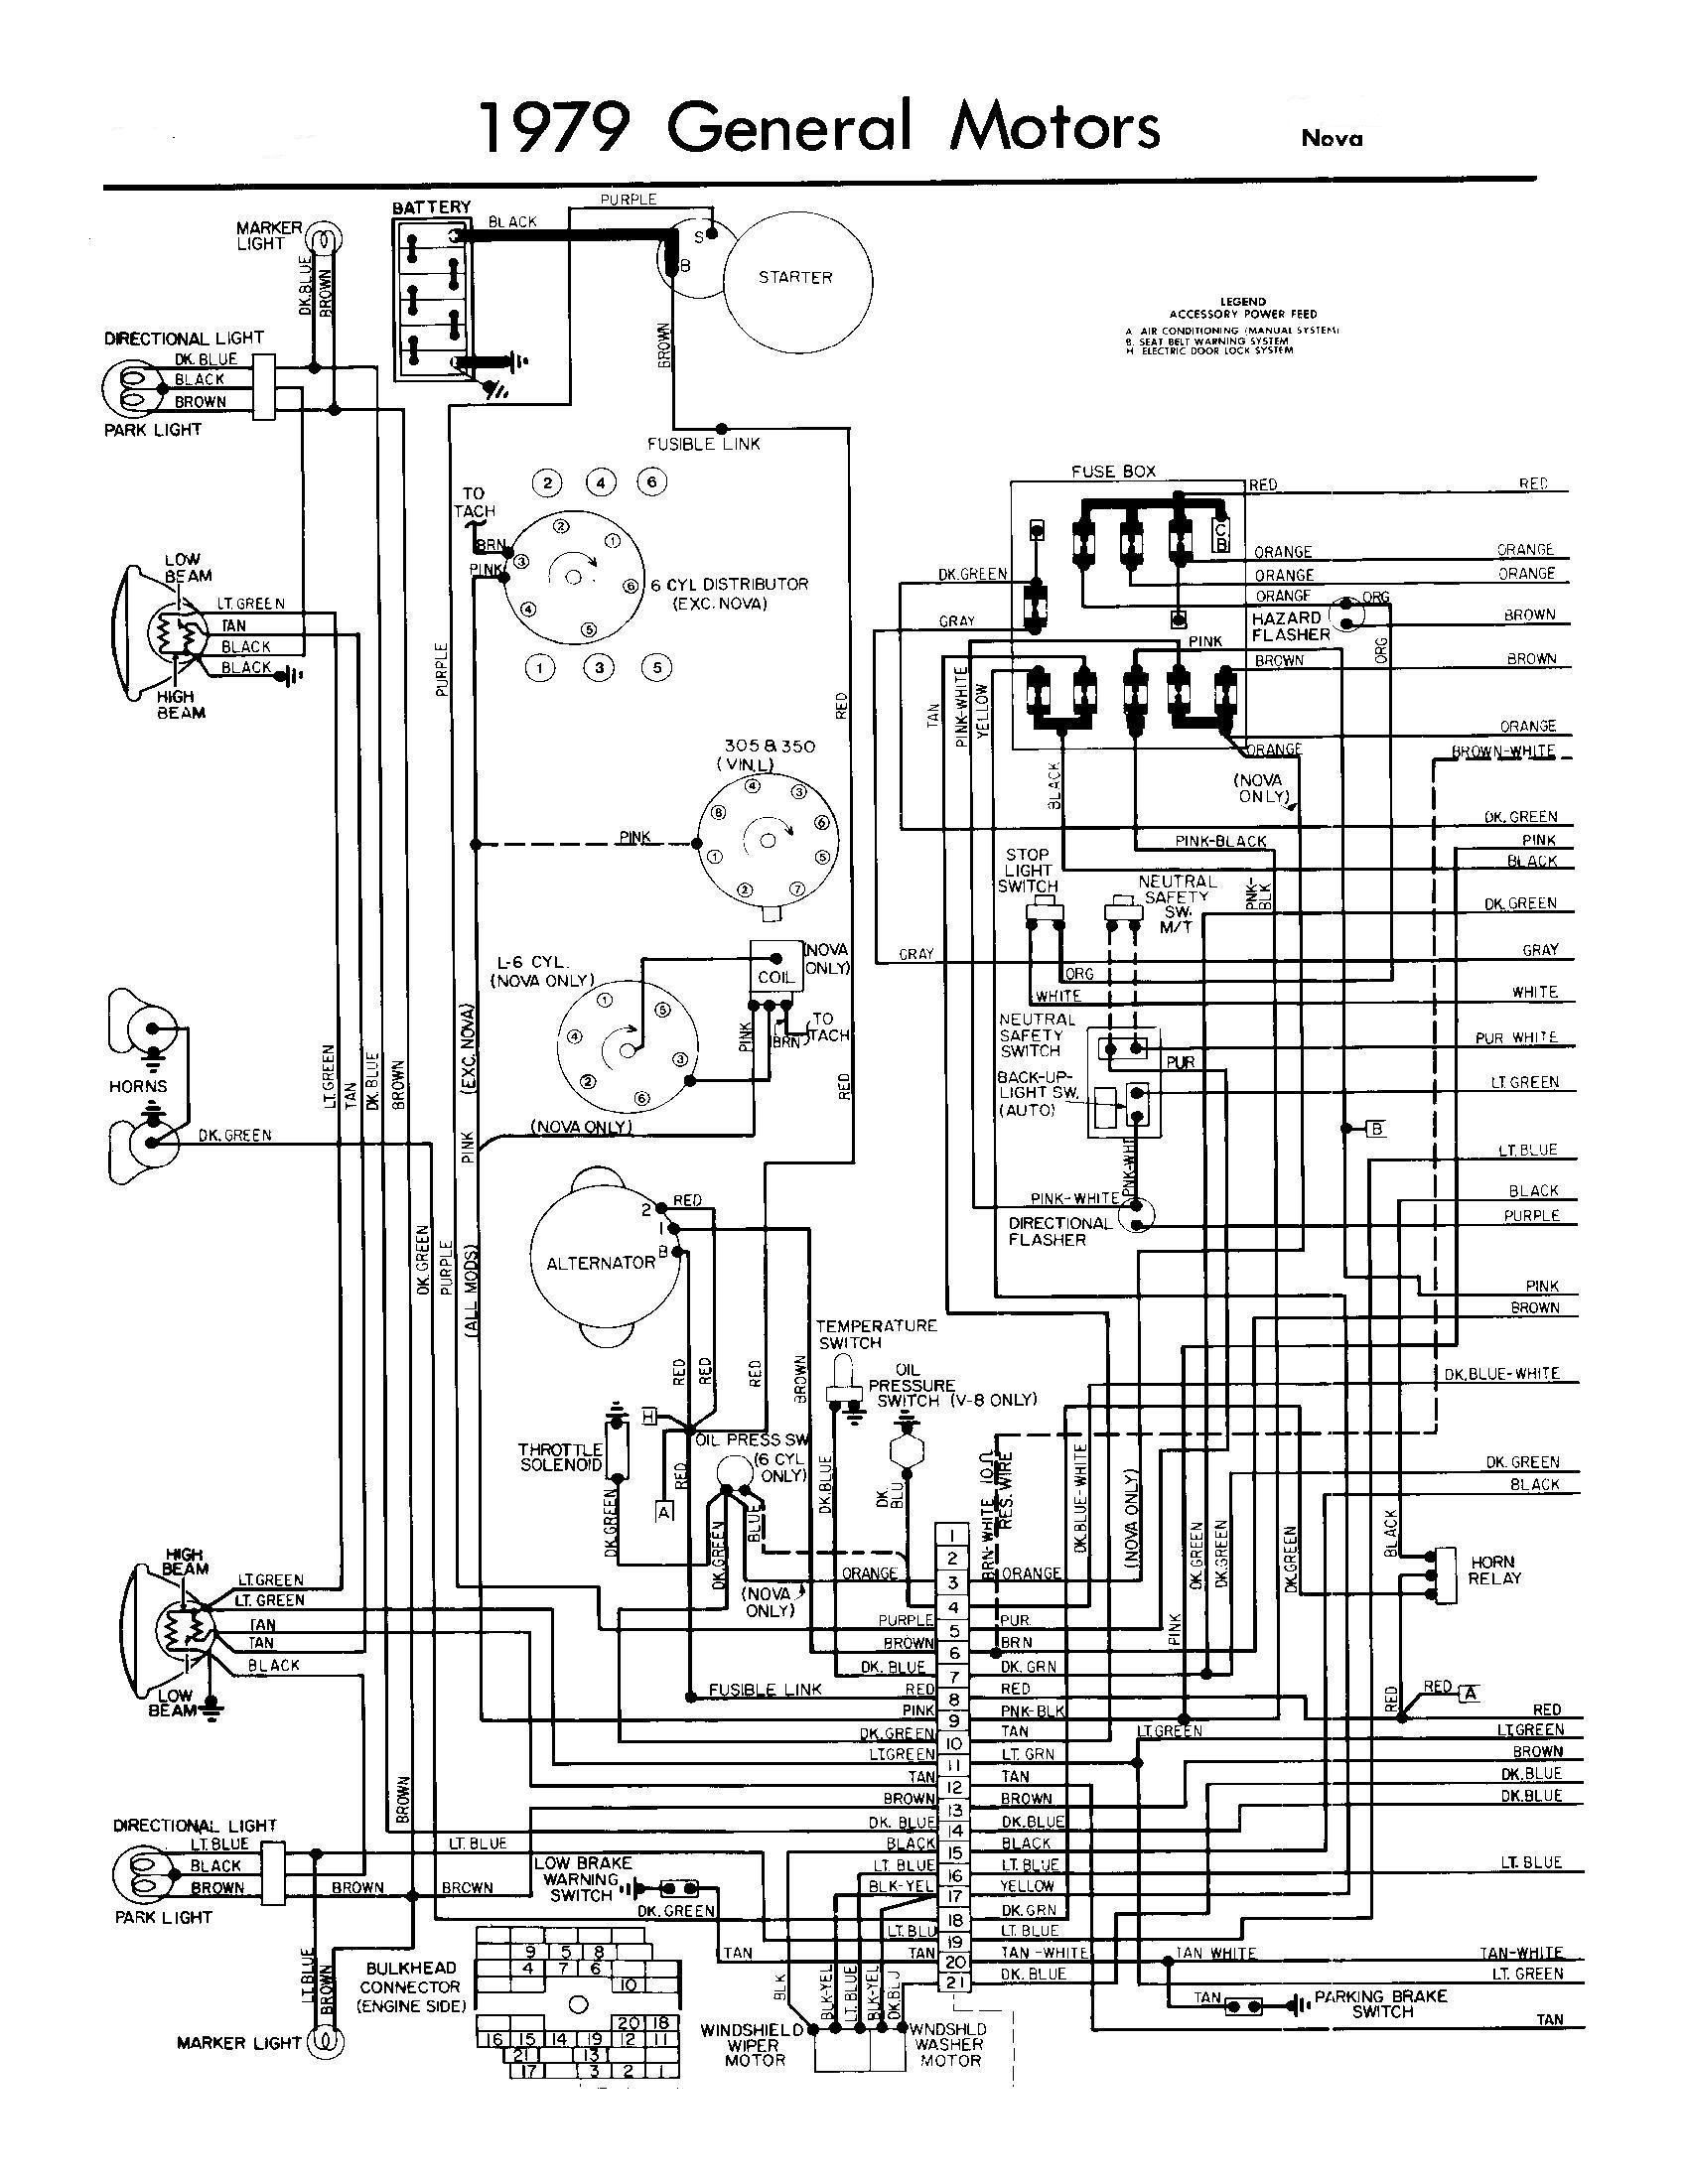 1979 nova wiring diagram